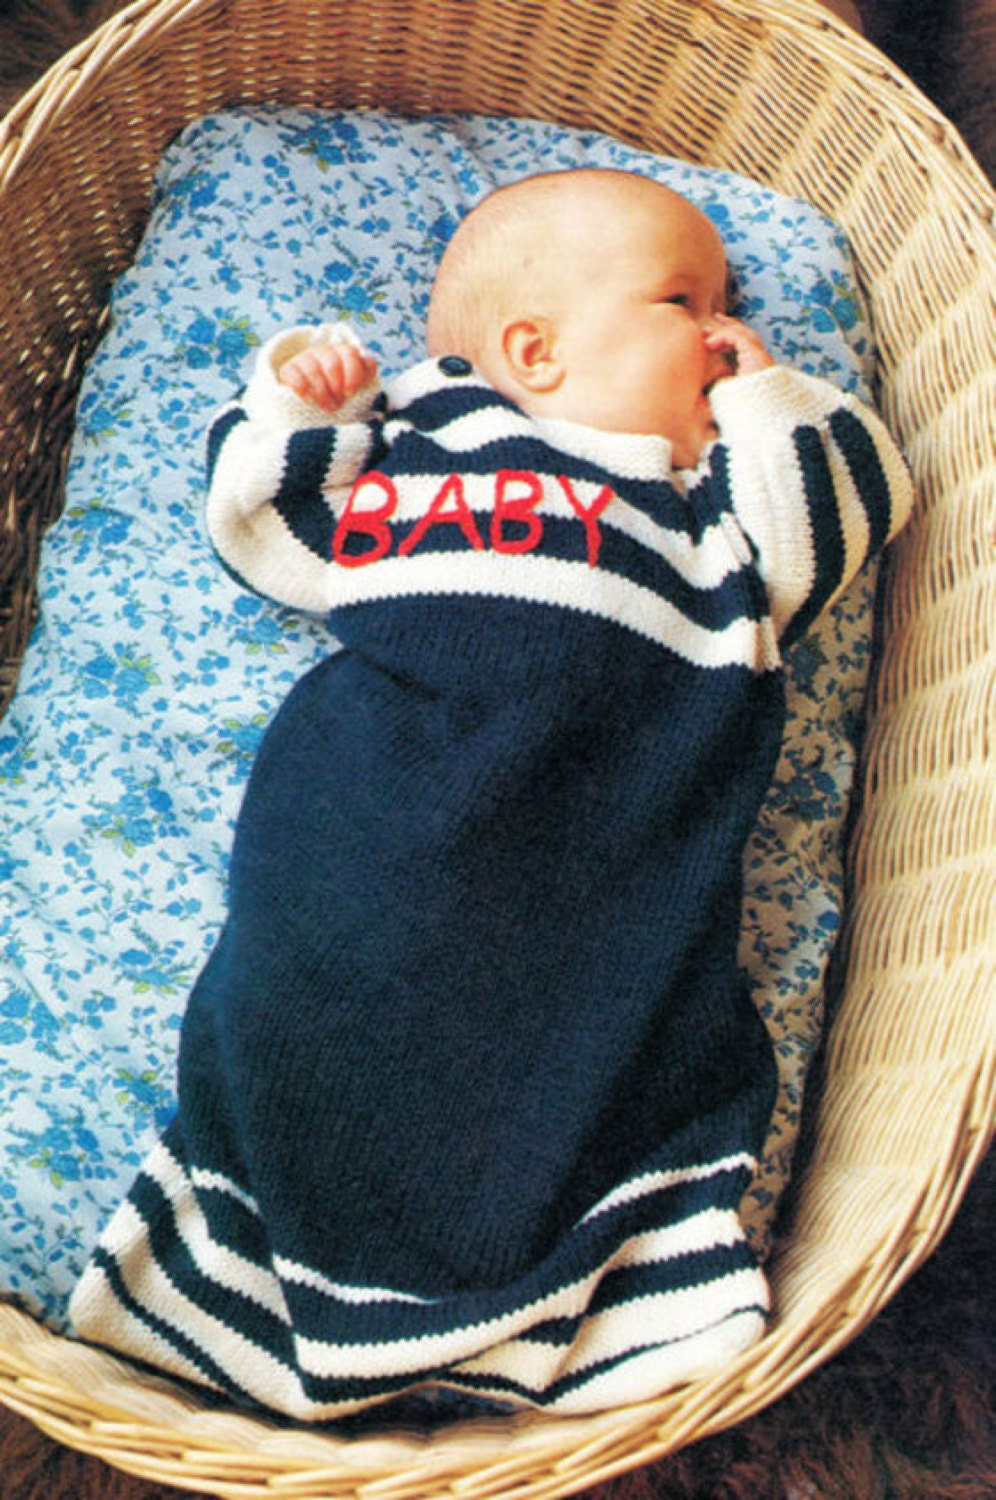 baby sleeping bag dk knitting pattern 99p pdf